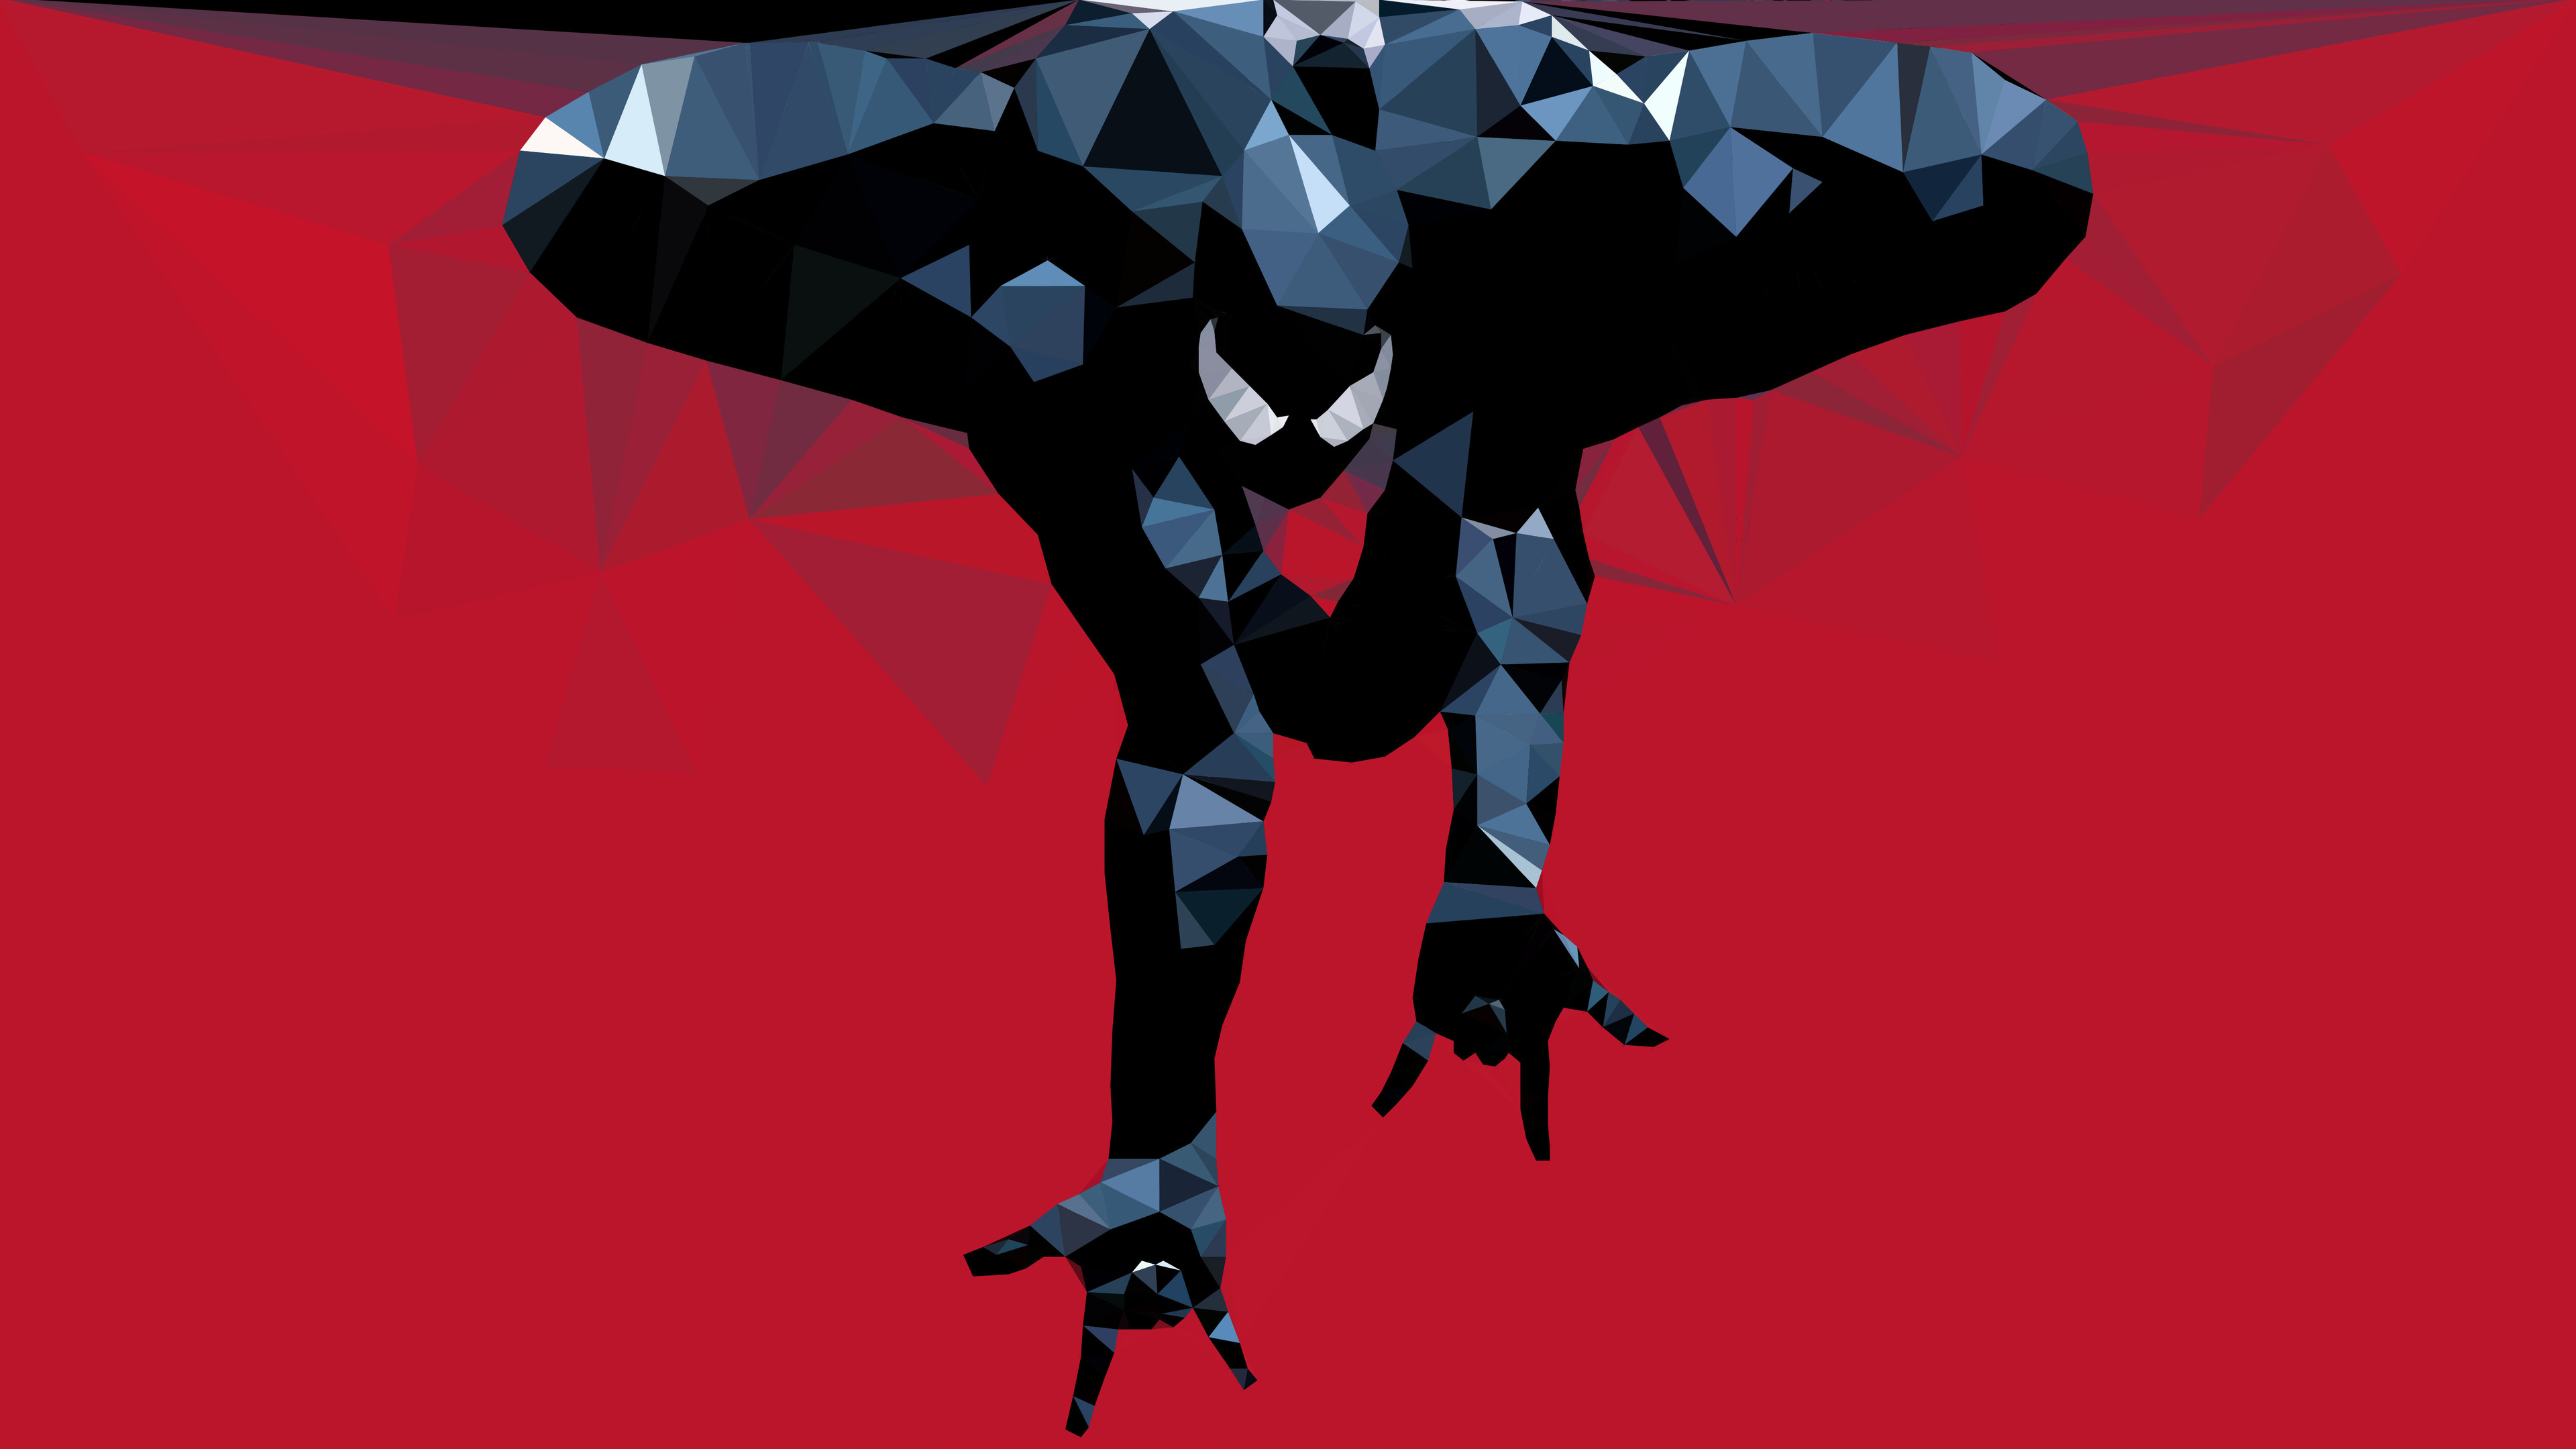 sinister spider man low poly art 1536522777 - Sinister Spider Man Low Poly Art - superheroes wallpapers, sinister wallpapers, low poly wallpapers, hd-wallpapers, digital art wallpapers, artwork wallpapers, 5k wallpapers, 4k-wallpapers